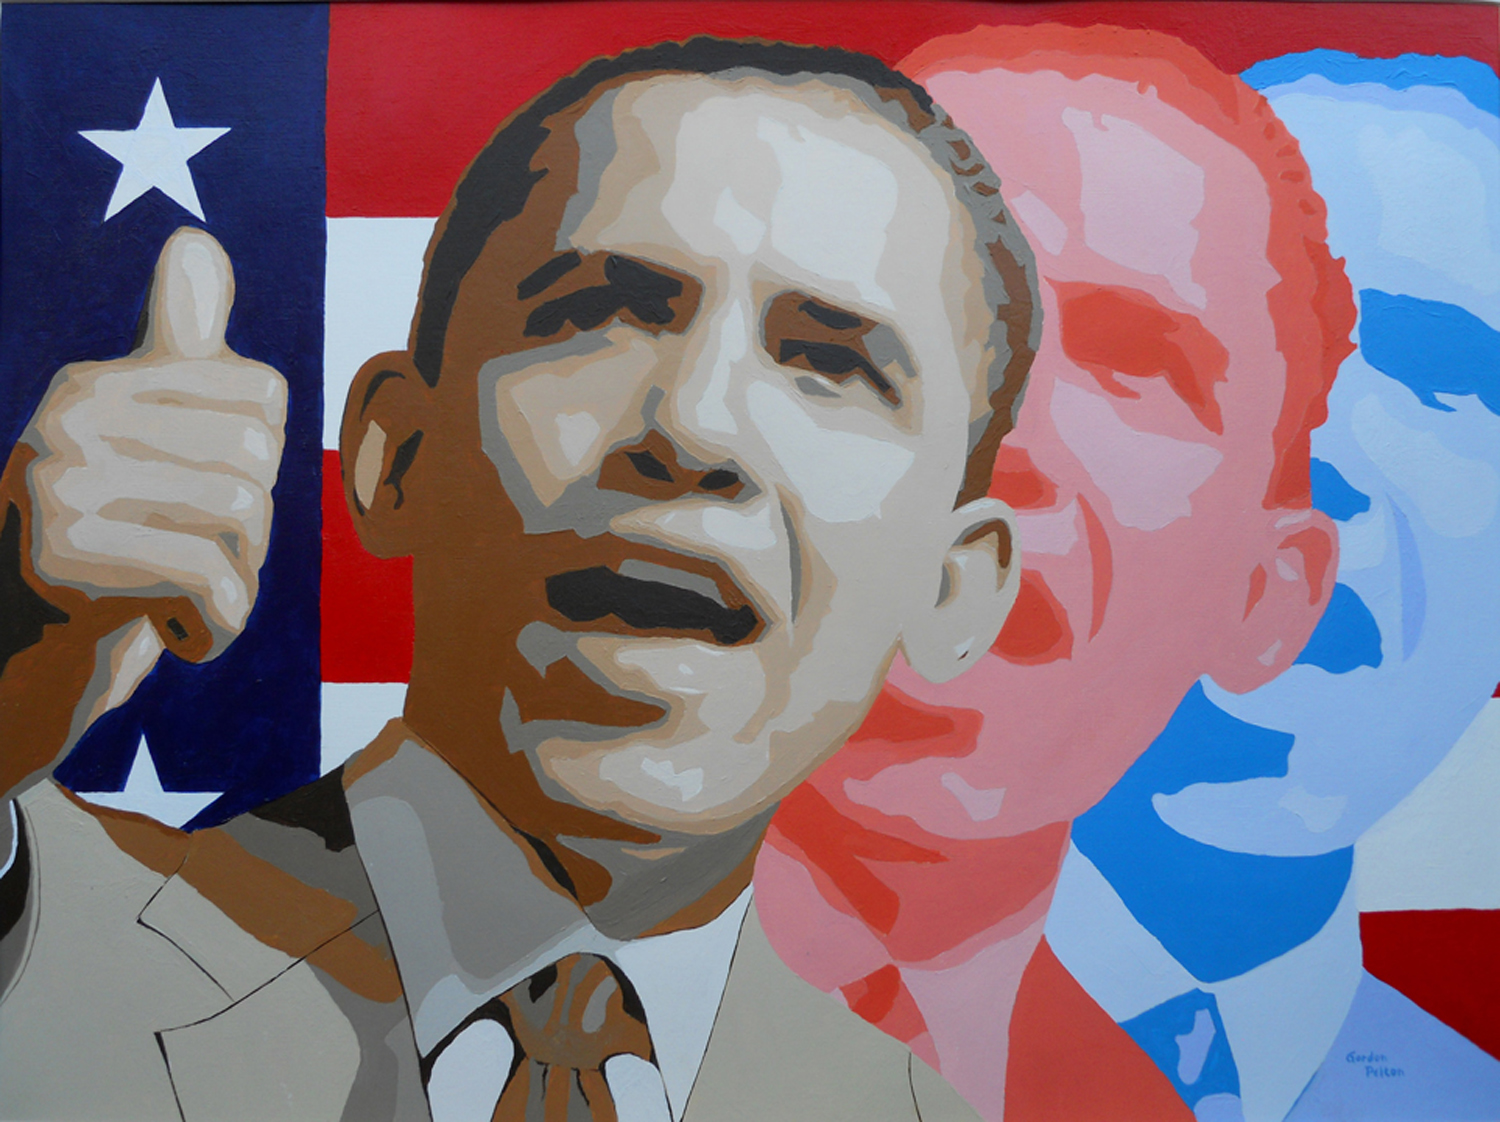 """Barack Obama   24"""" x 18"""" Unframed Acrylic on Heavyweight Linen Paper $1295  Giclee Copies Available       PLACE ORDER"""